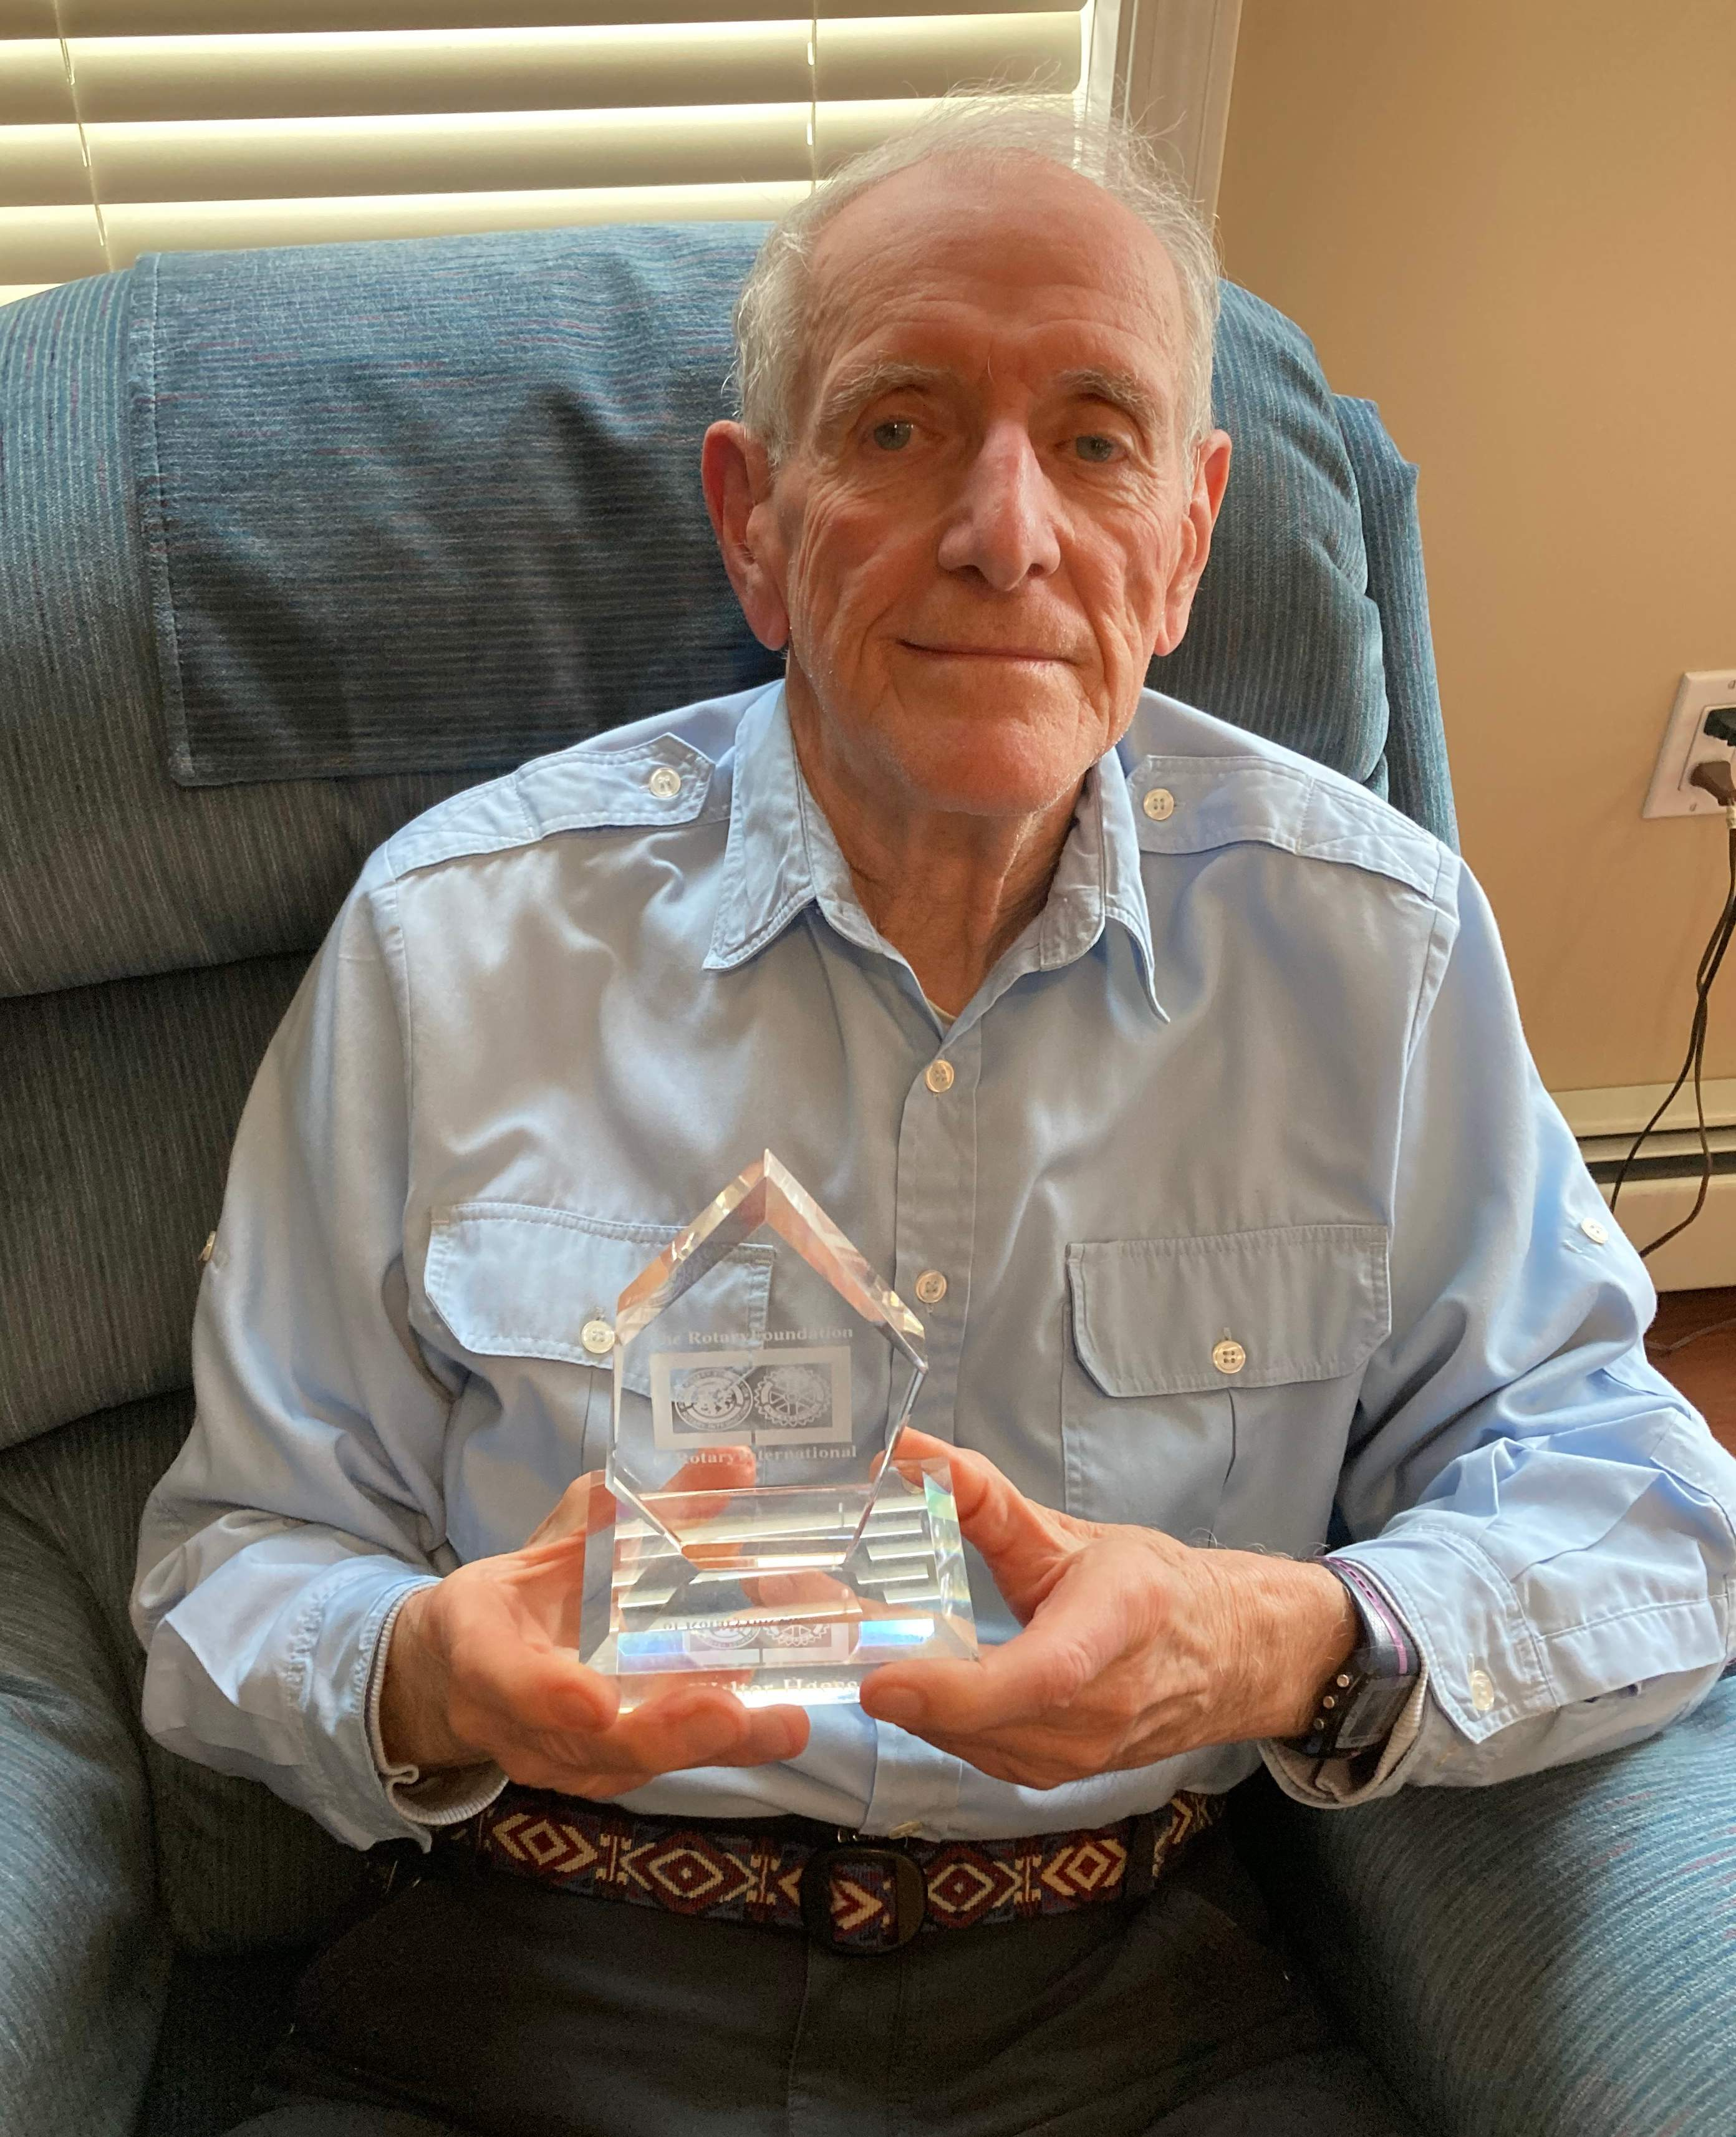 Long time Rotarian Walter Haessel holds one of several awards for his volunteer work